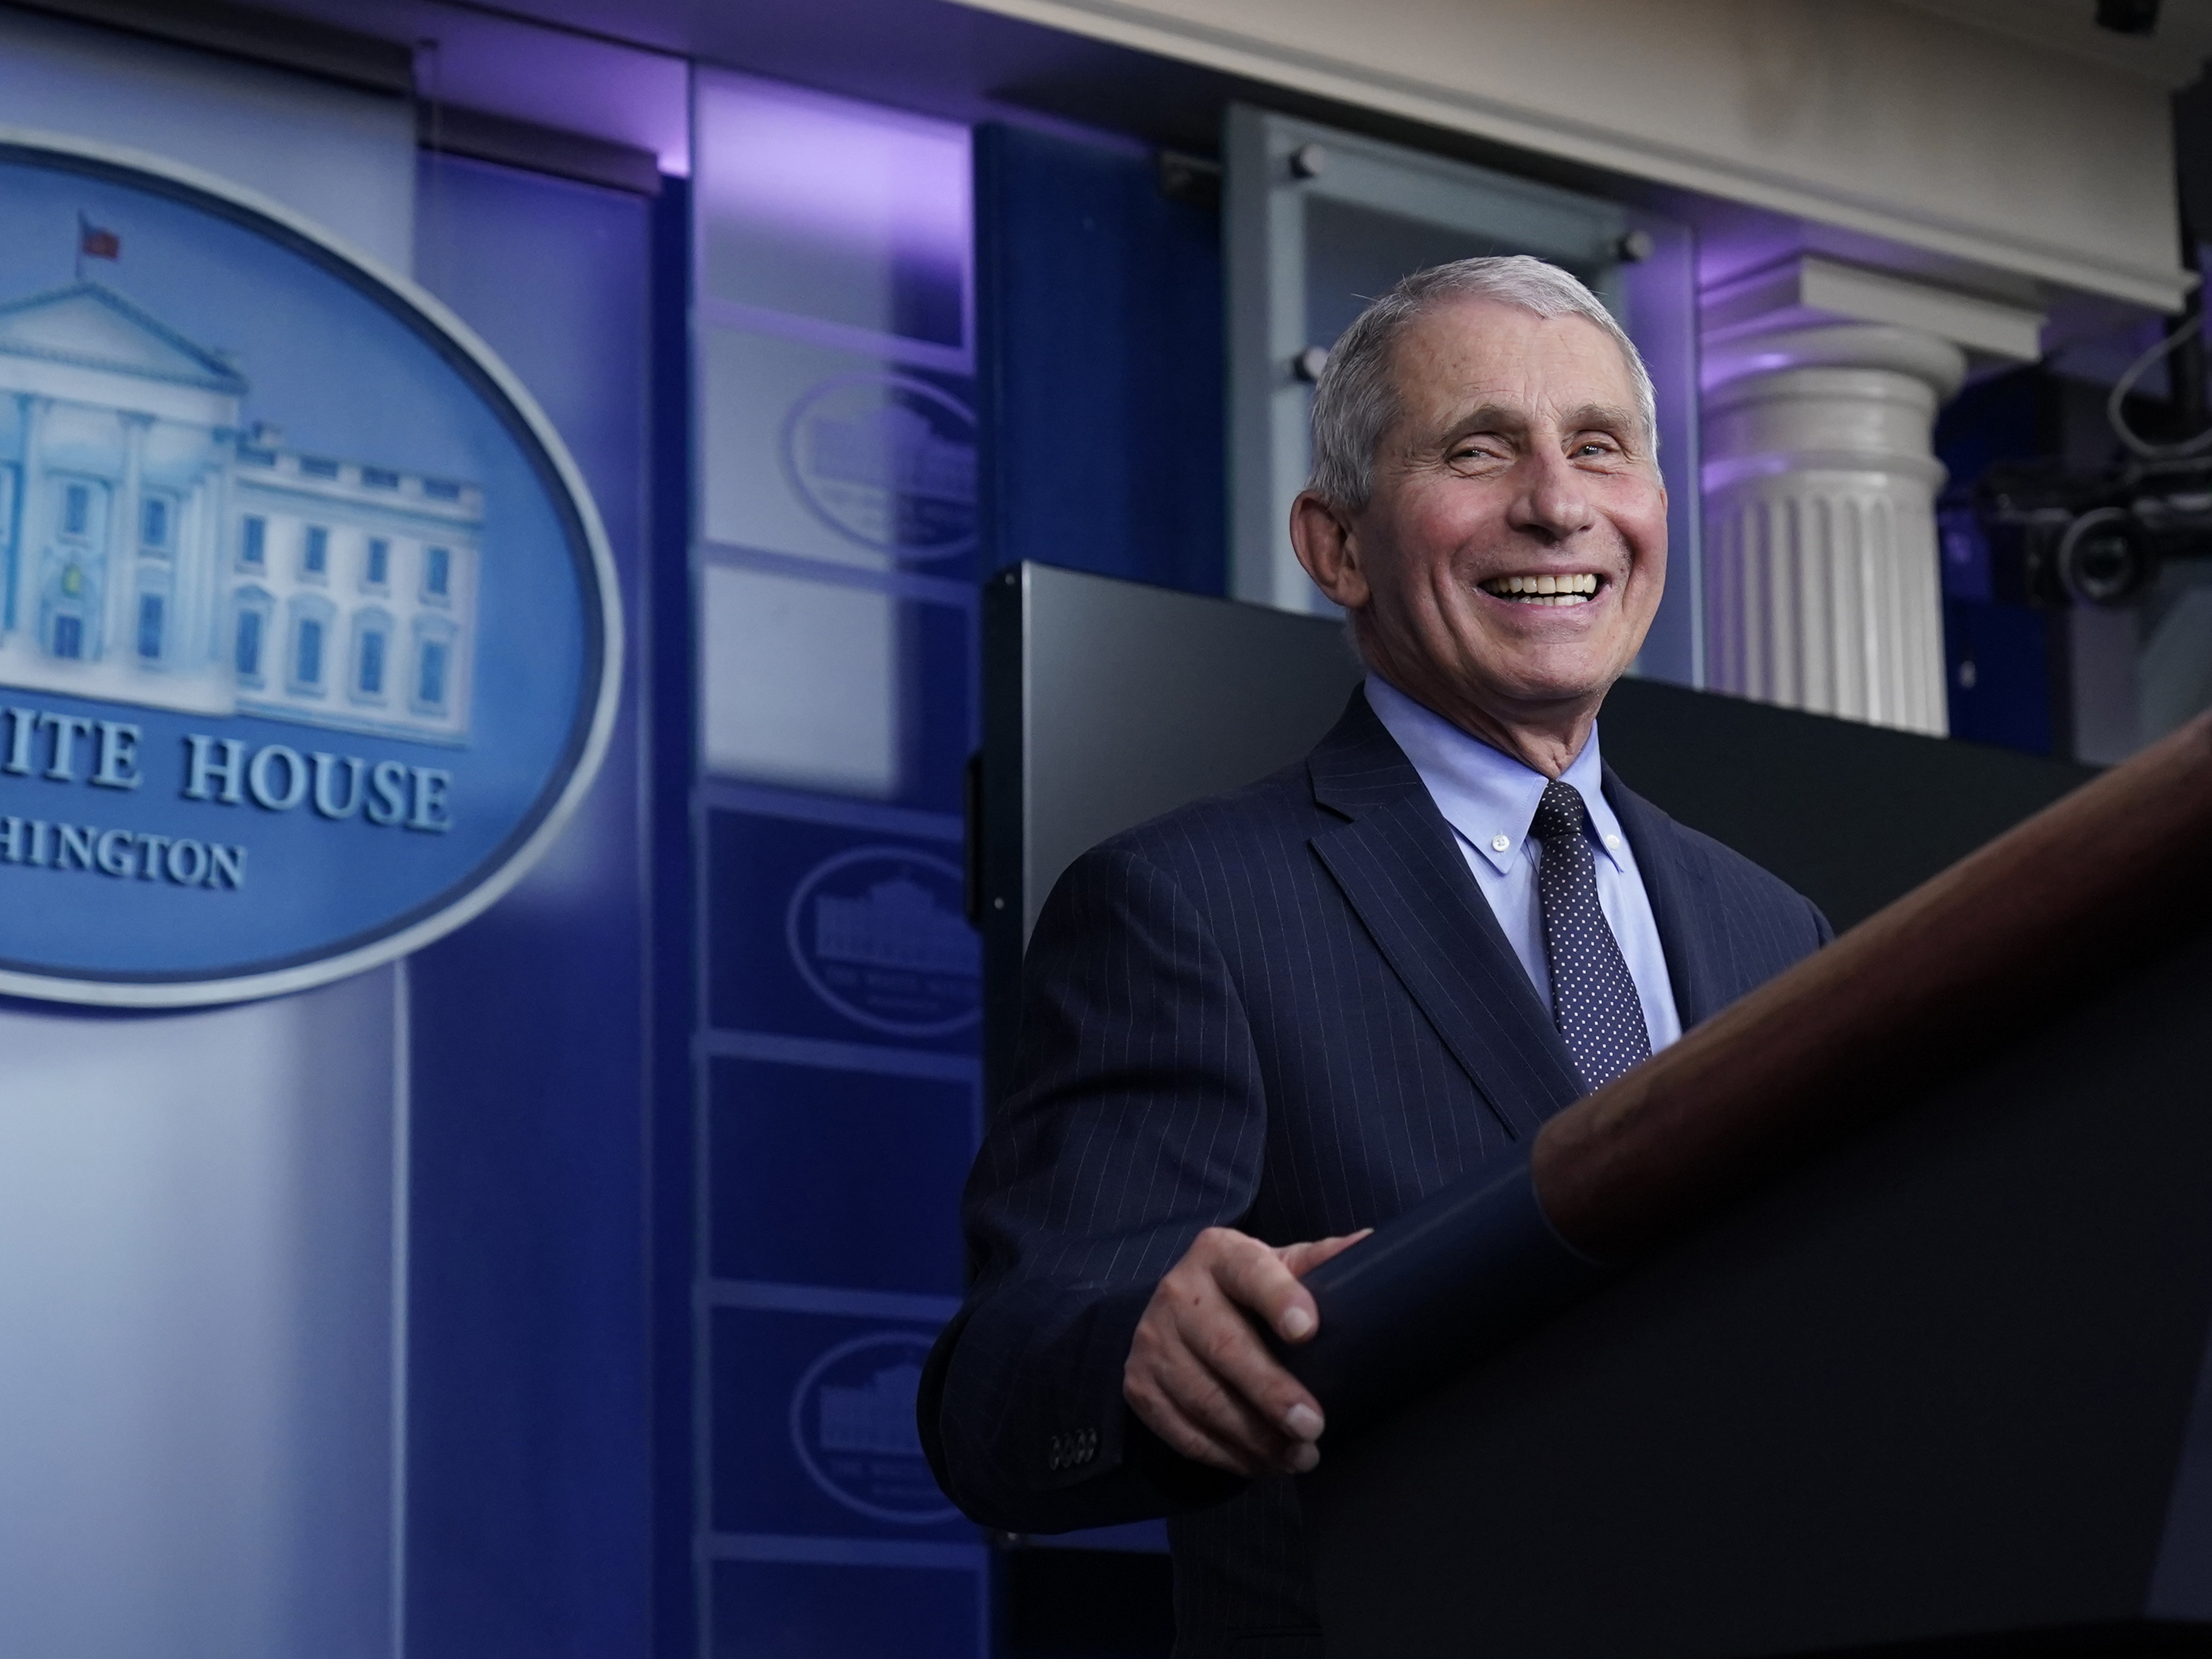 Dr. Anthony Fauci laughs while speaking at a White House briefing on Thursday. Fauci President Biden's chief medical adviser on COVID-19 says he rejoiced when the new president declared that